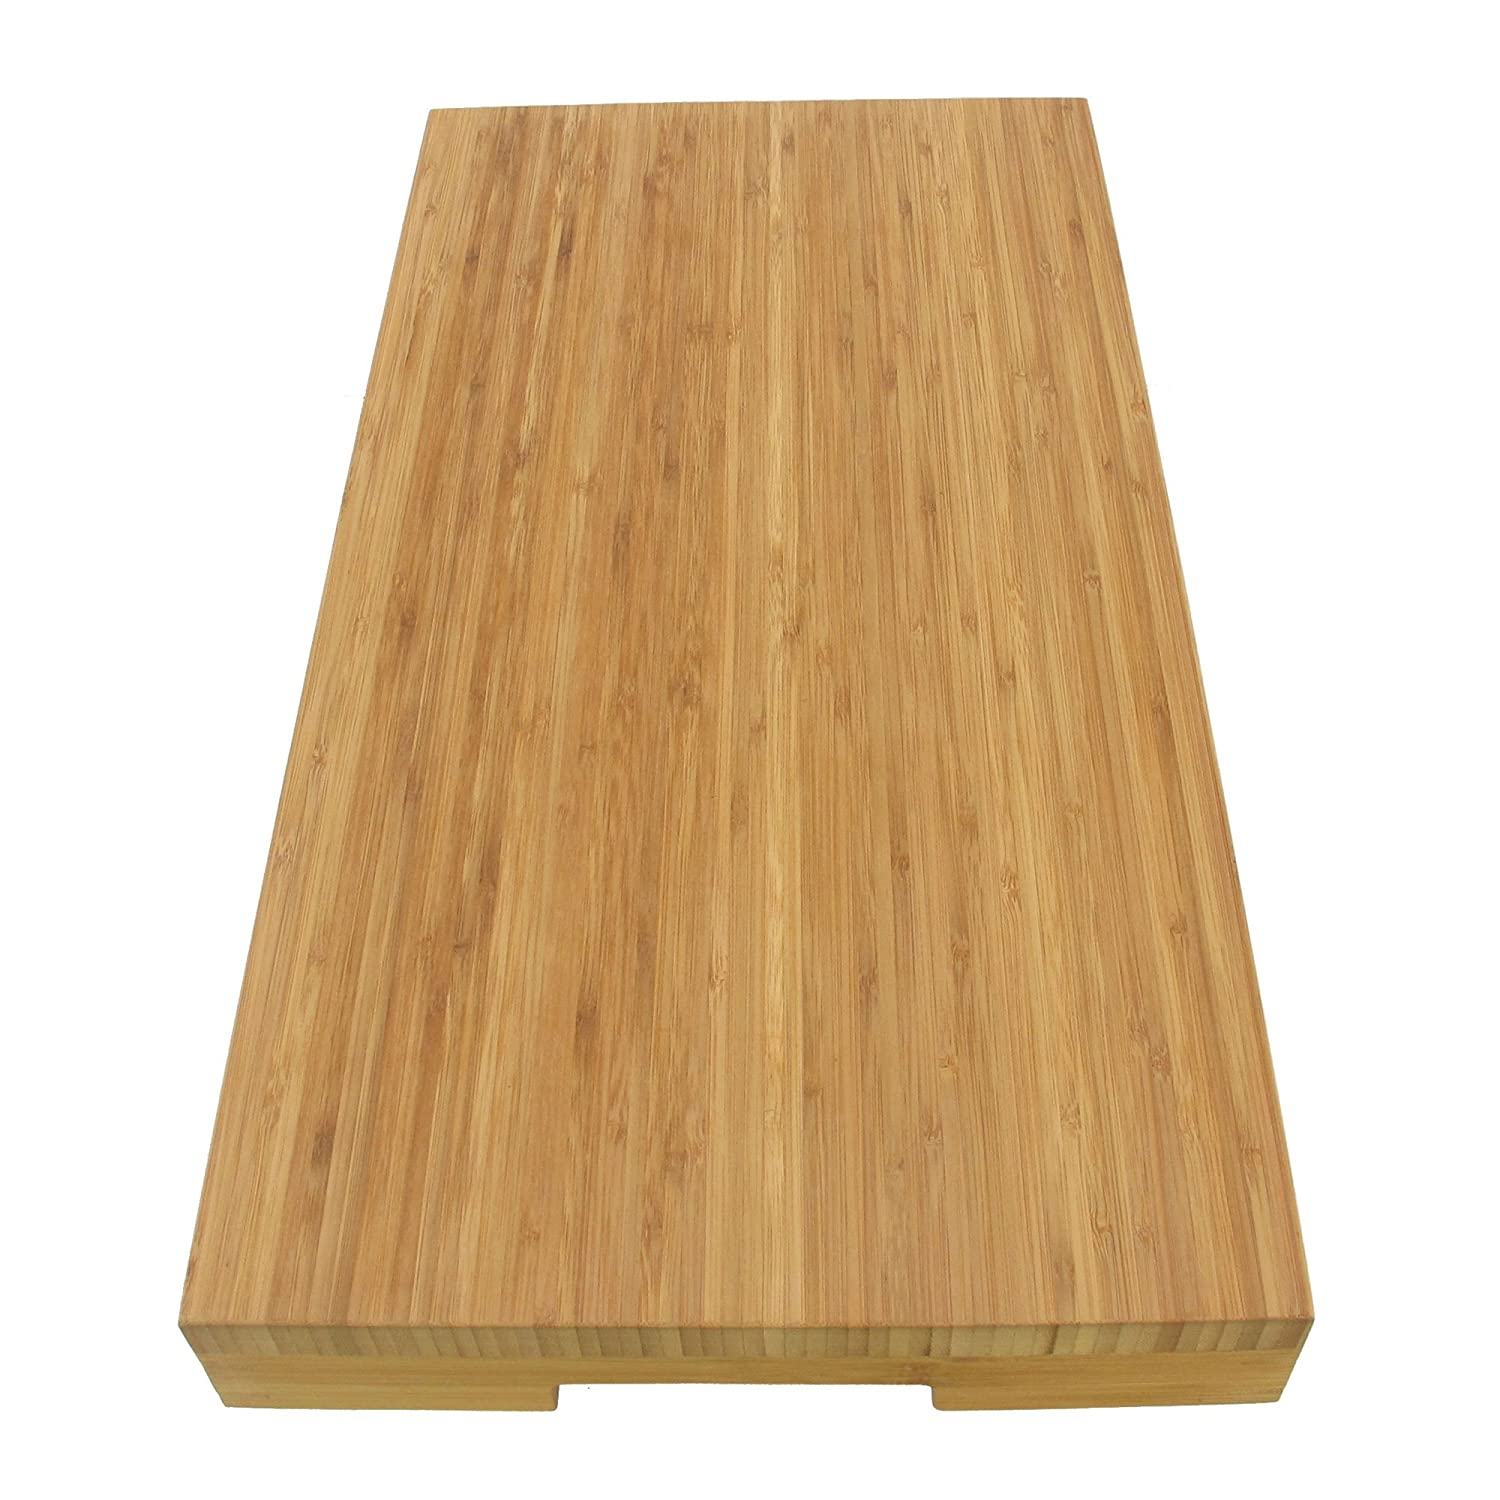 "BambooMN Brand Bamboo Burner Cover/Cutting Board for Viking Cooktops, New Vertical Cut with Open End, Large (22.68""x11.75""x2.28"")"